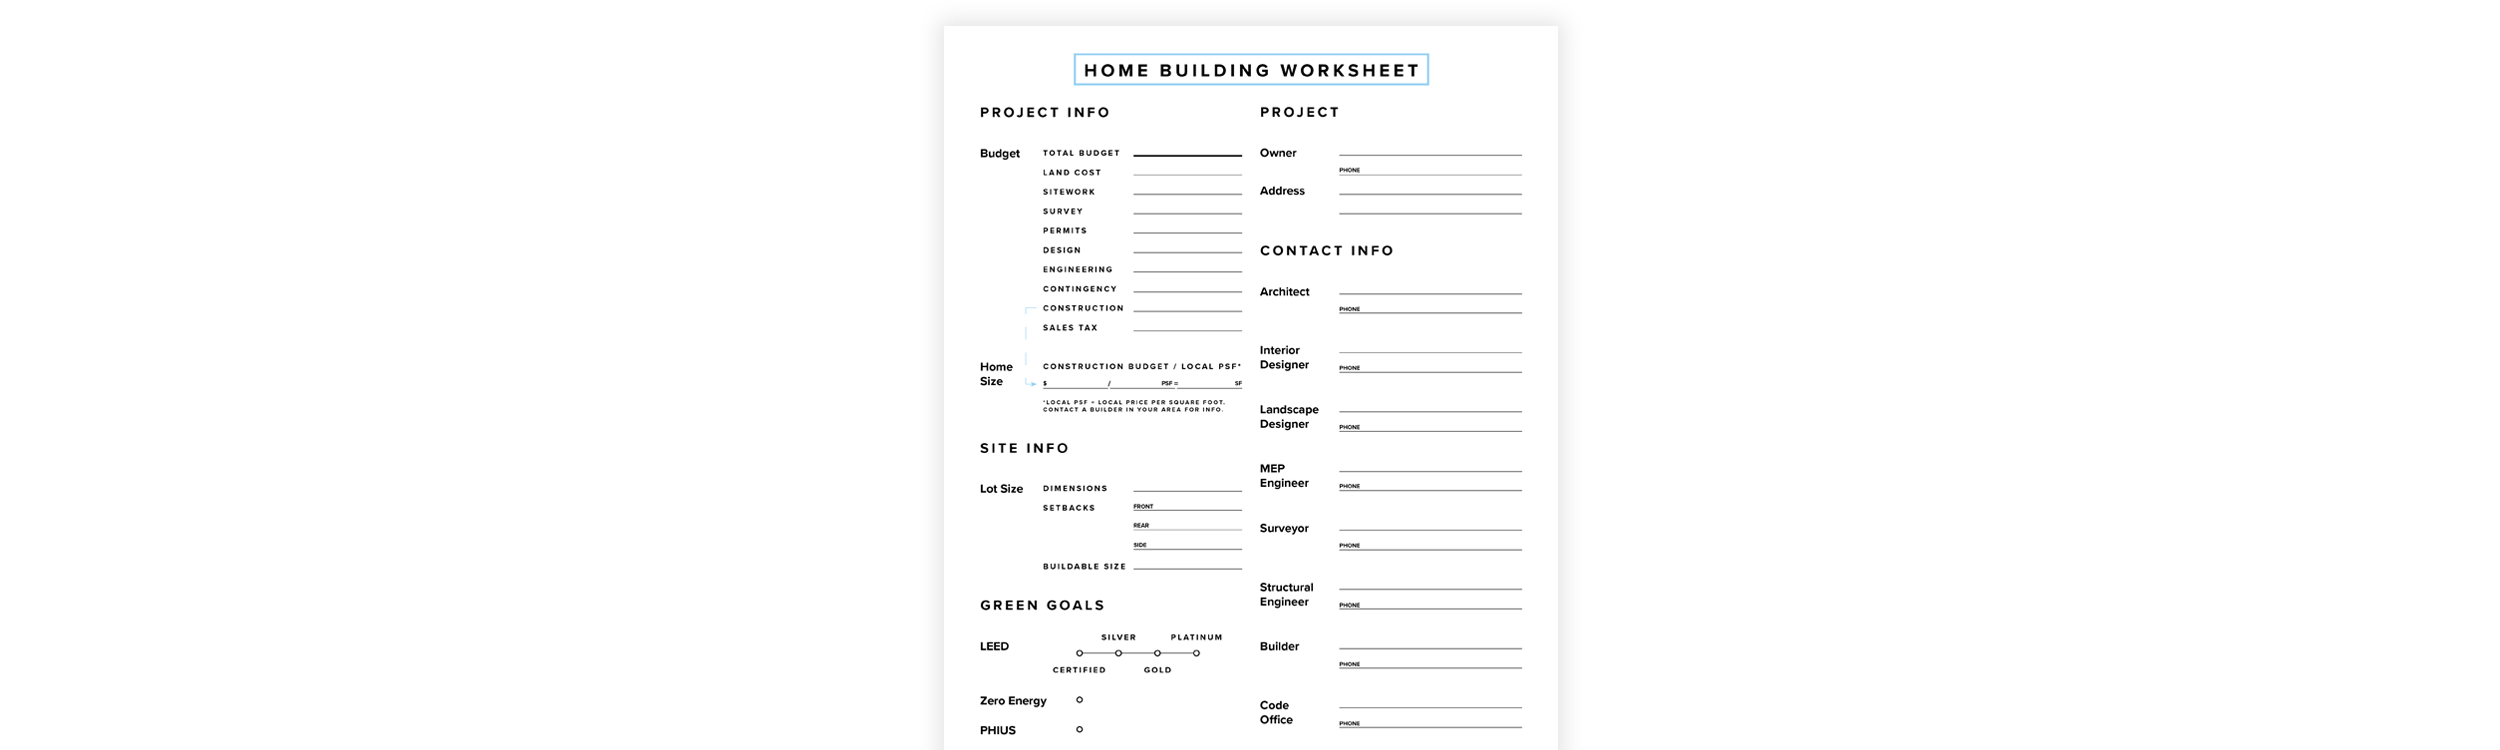 porch-light-home-design-worksheet.png